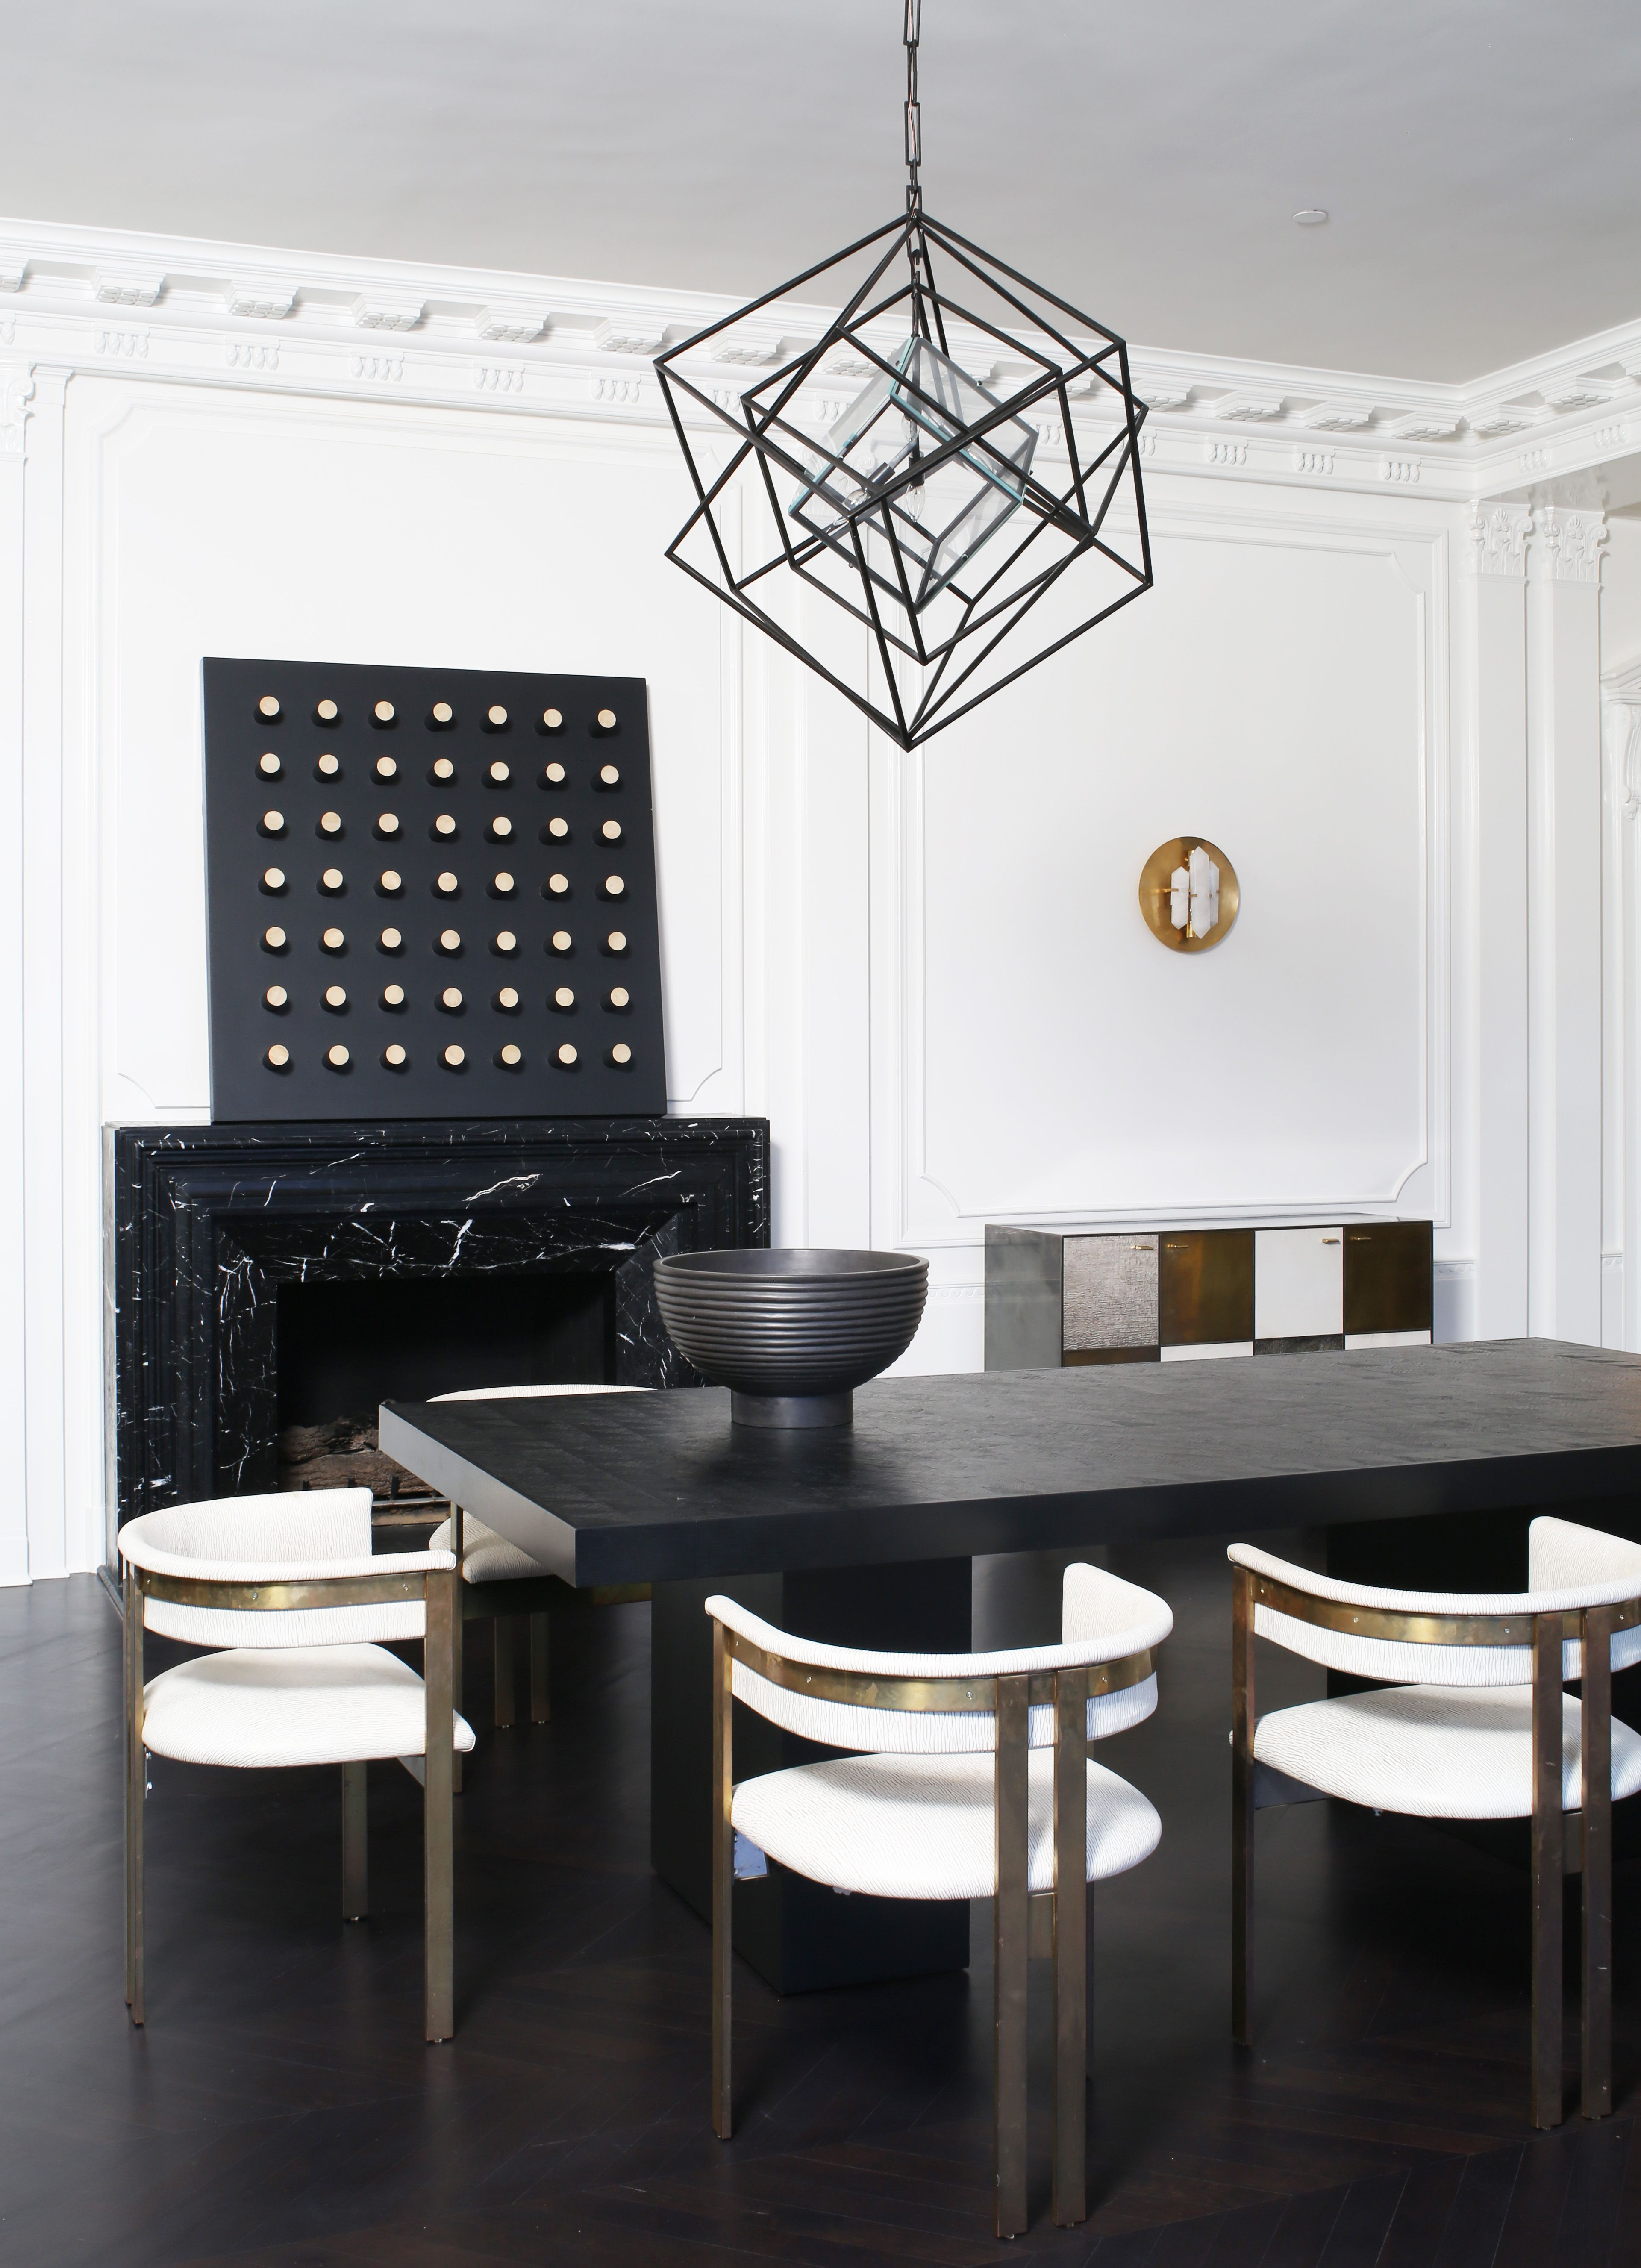 Kelly Wearstler Cubist Large Chandelier Geometric Lighting Available In Aged Iron And Gild In 2020 Dining Area Decor Dining Room Inspiration Dining Room Decor